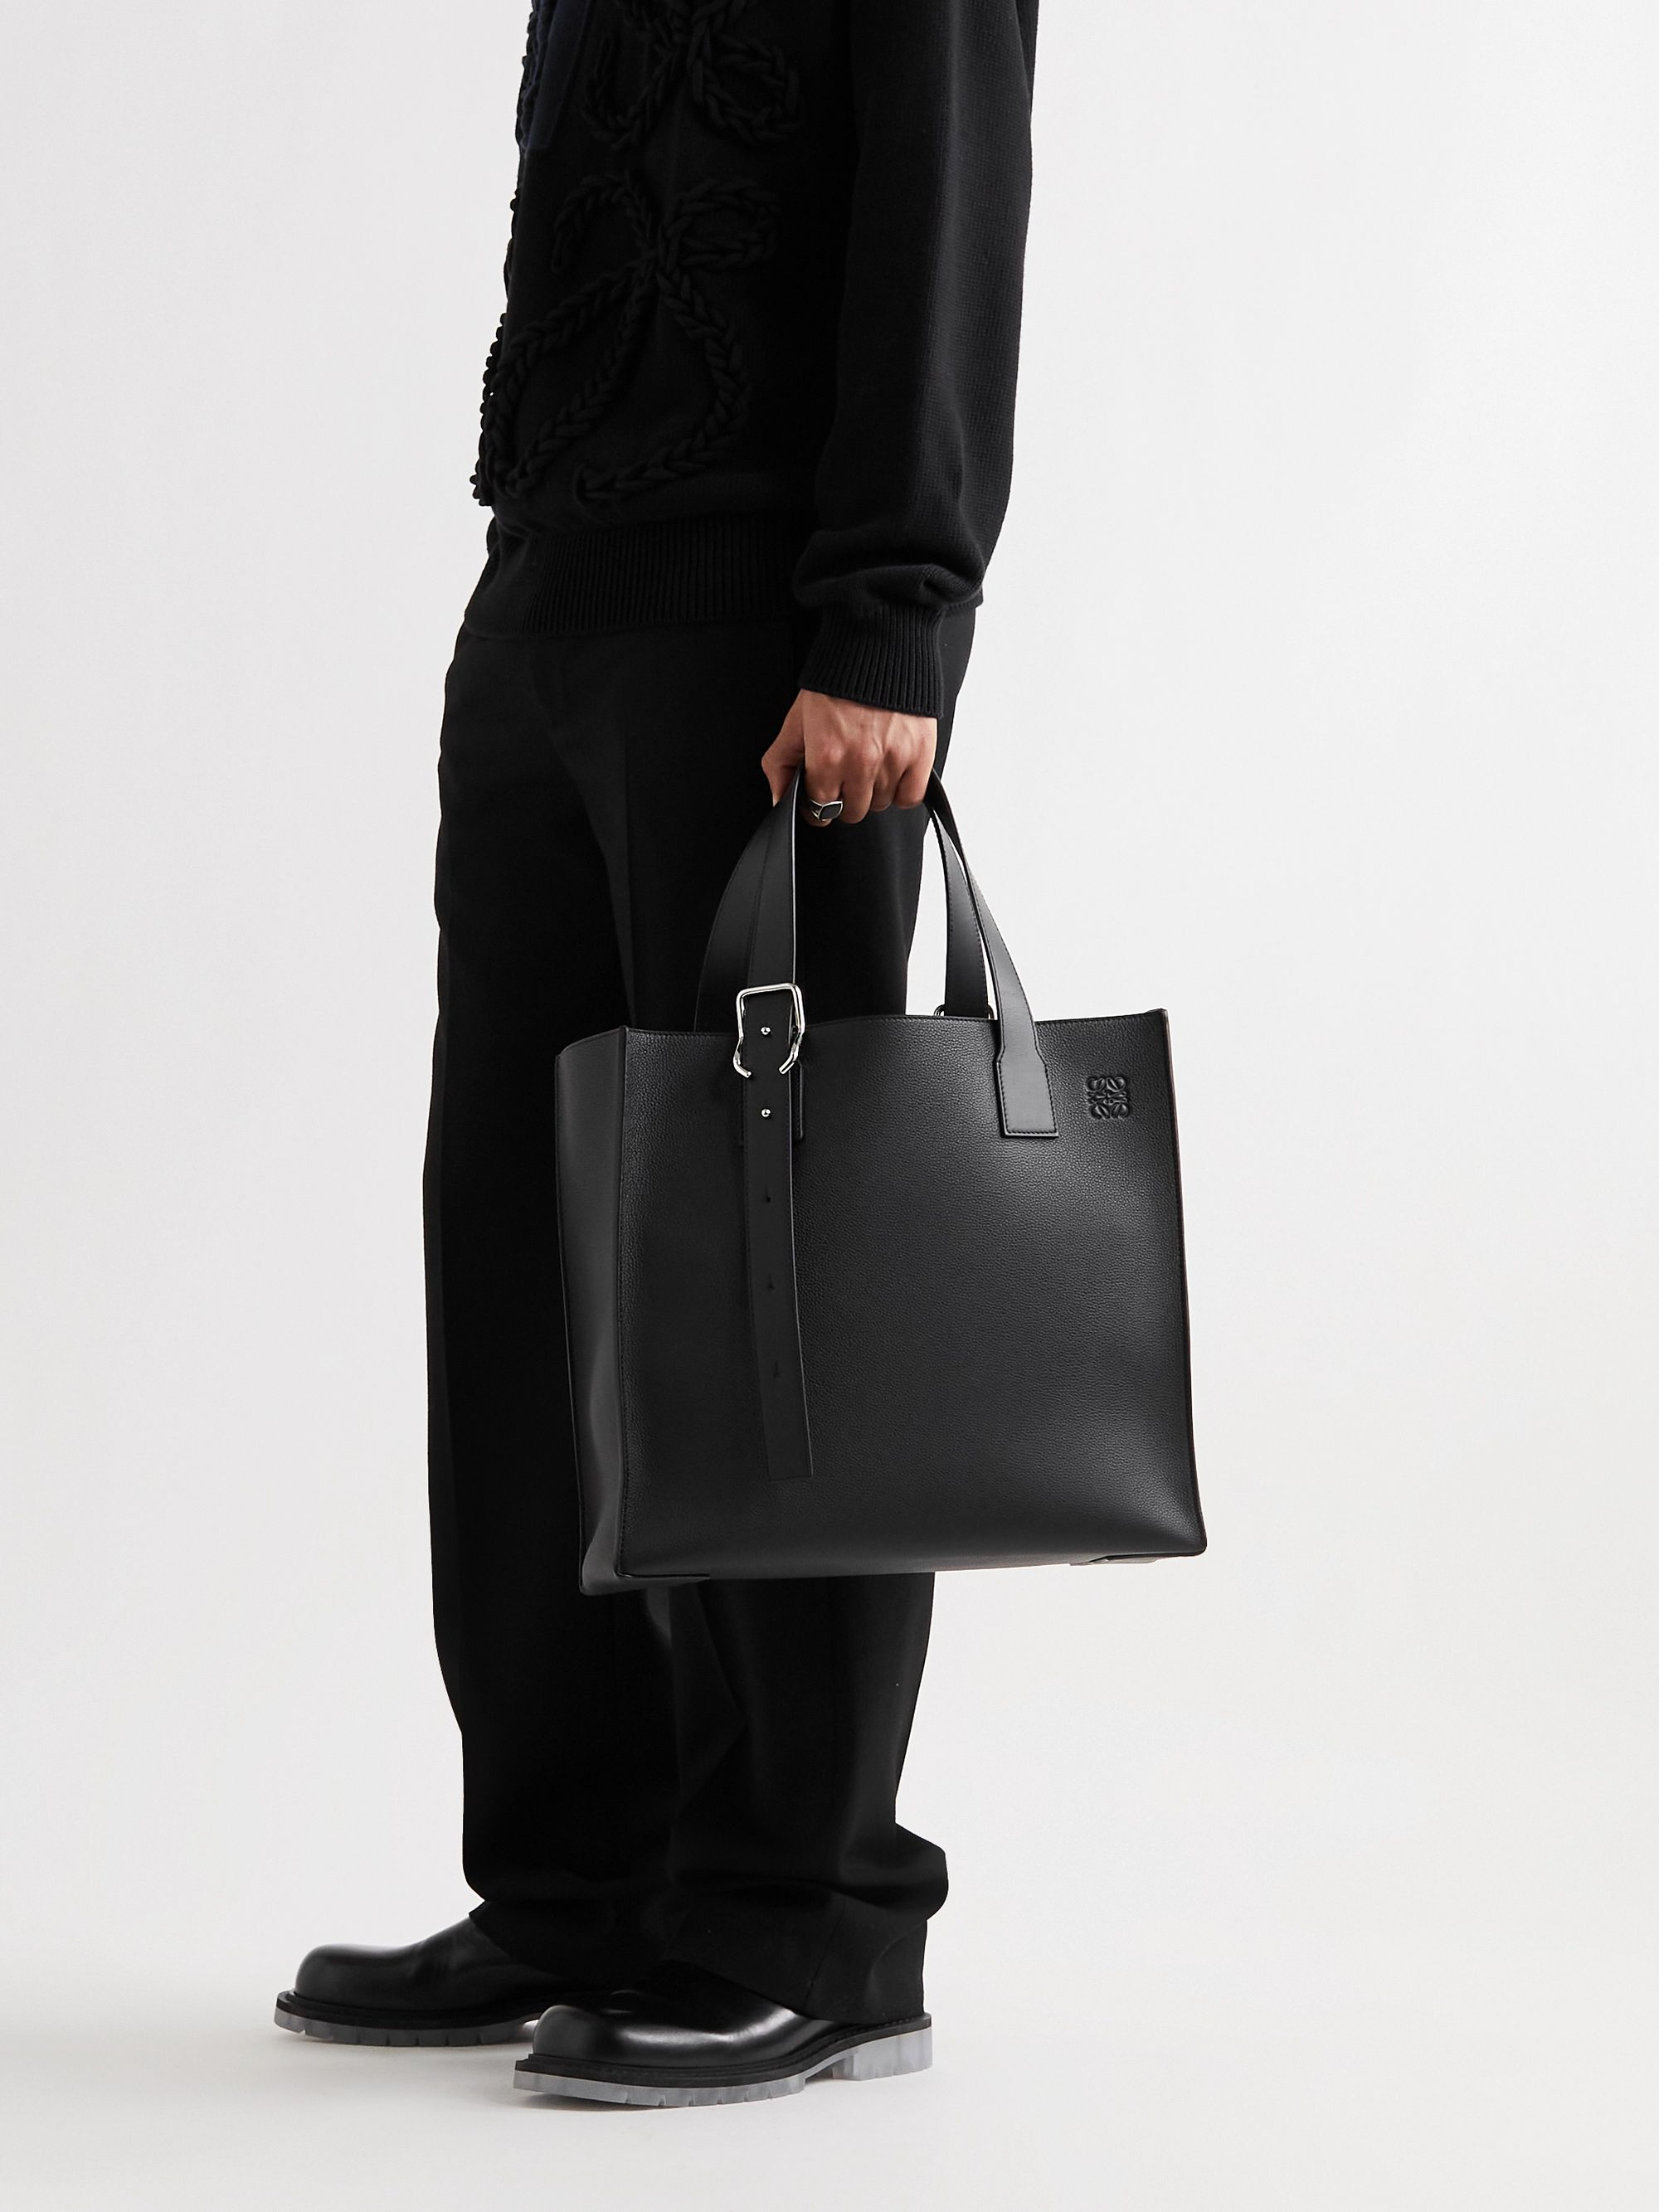 LOEWE Full-Grain Leather Tote Bag